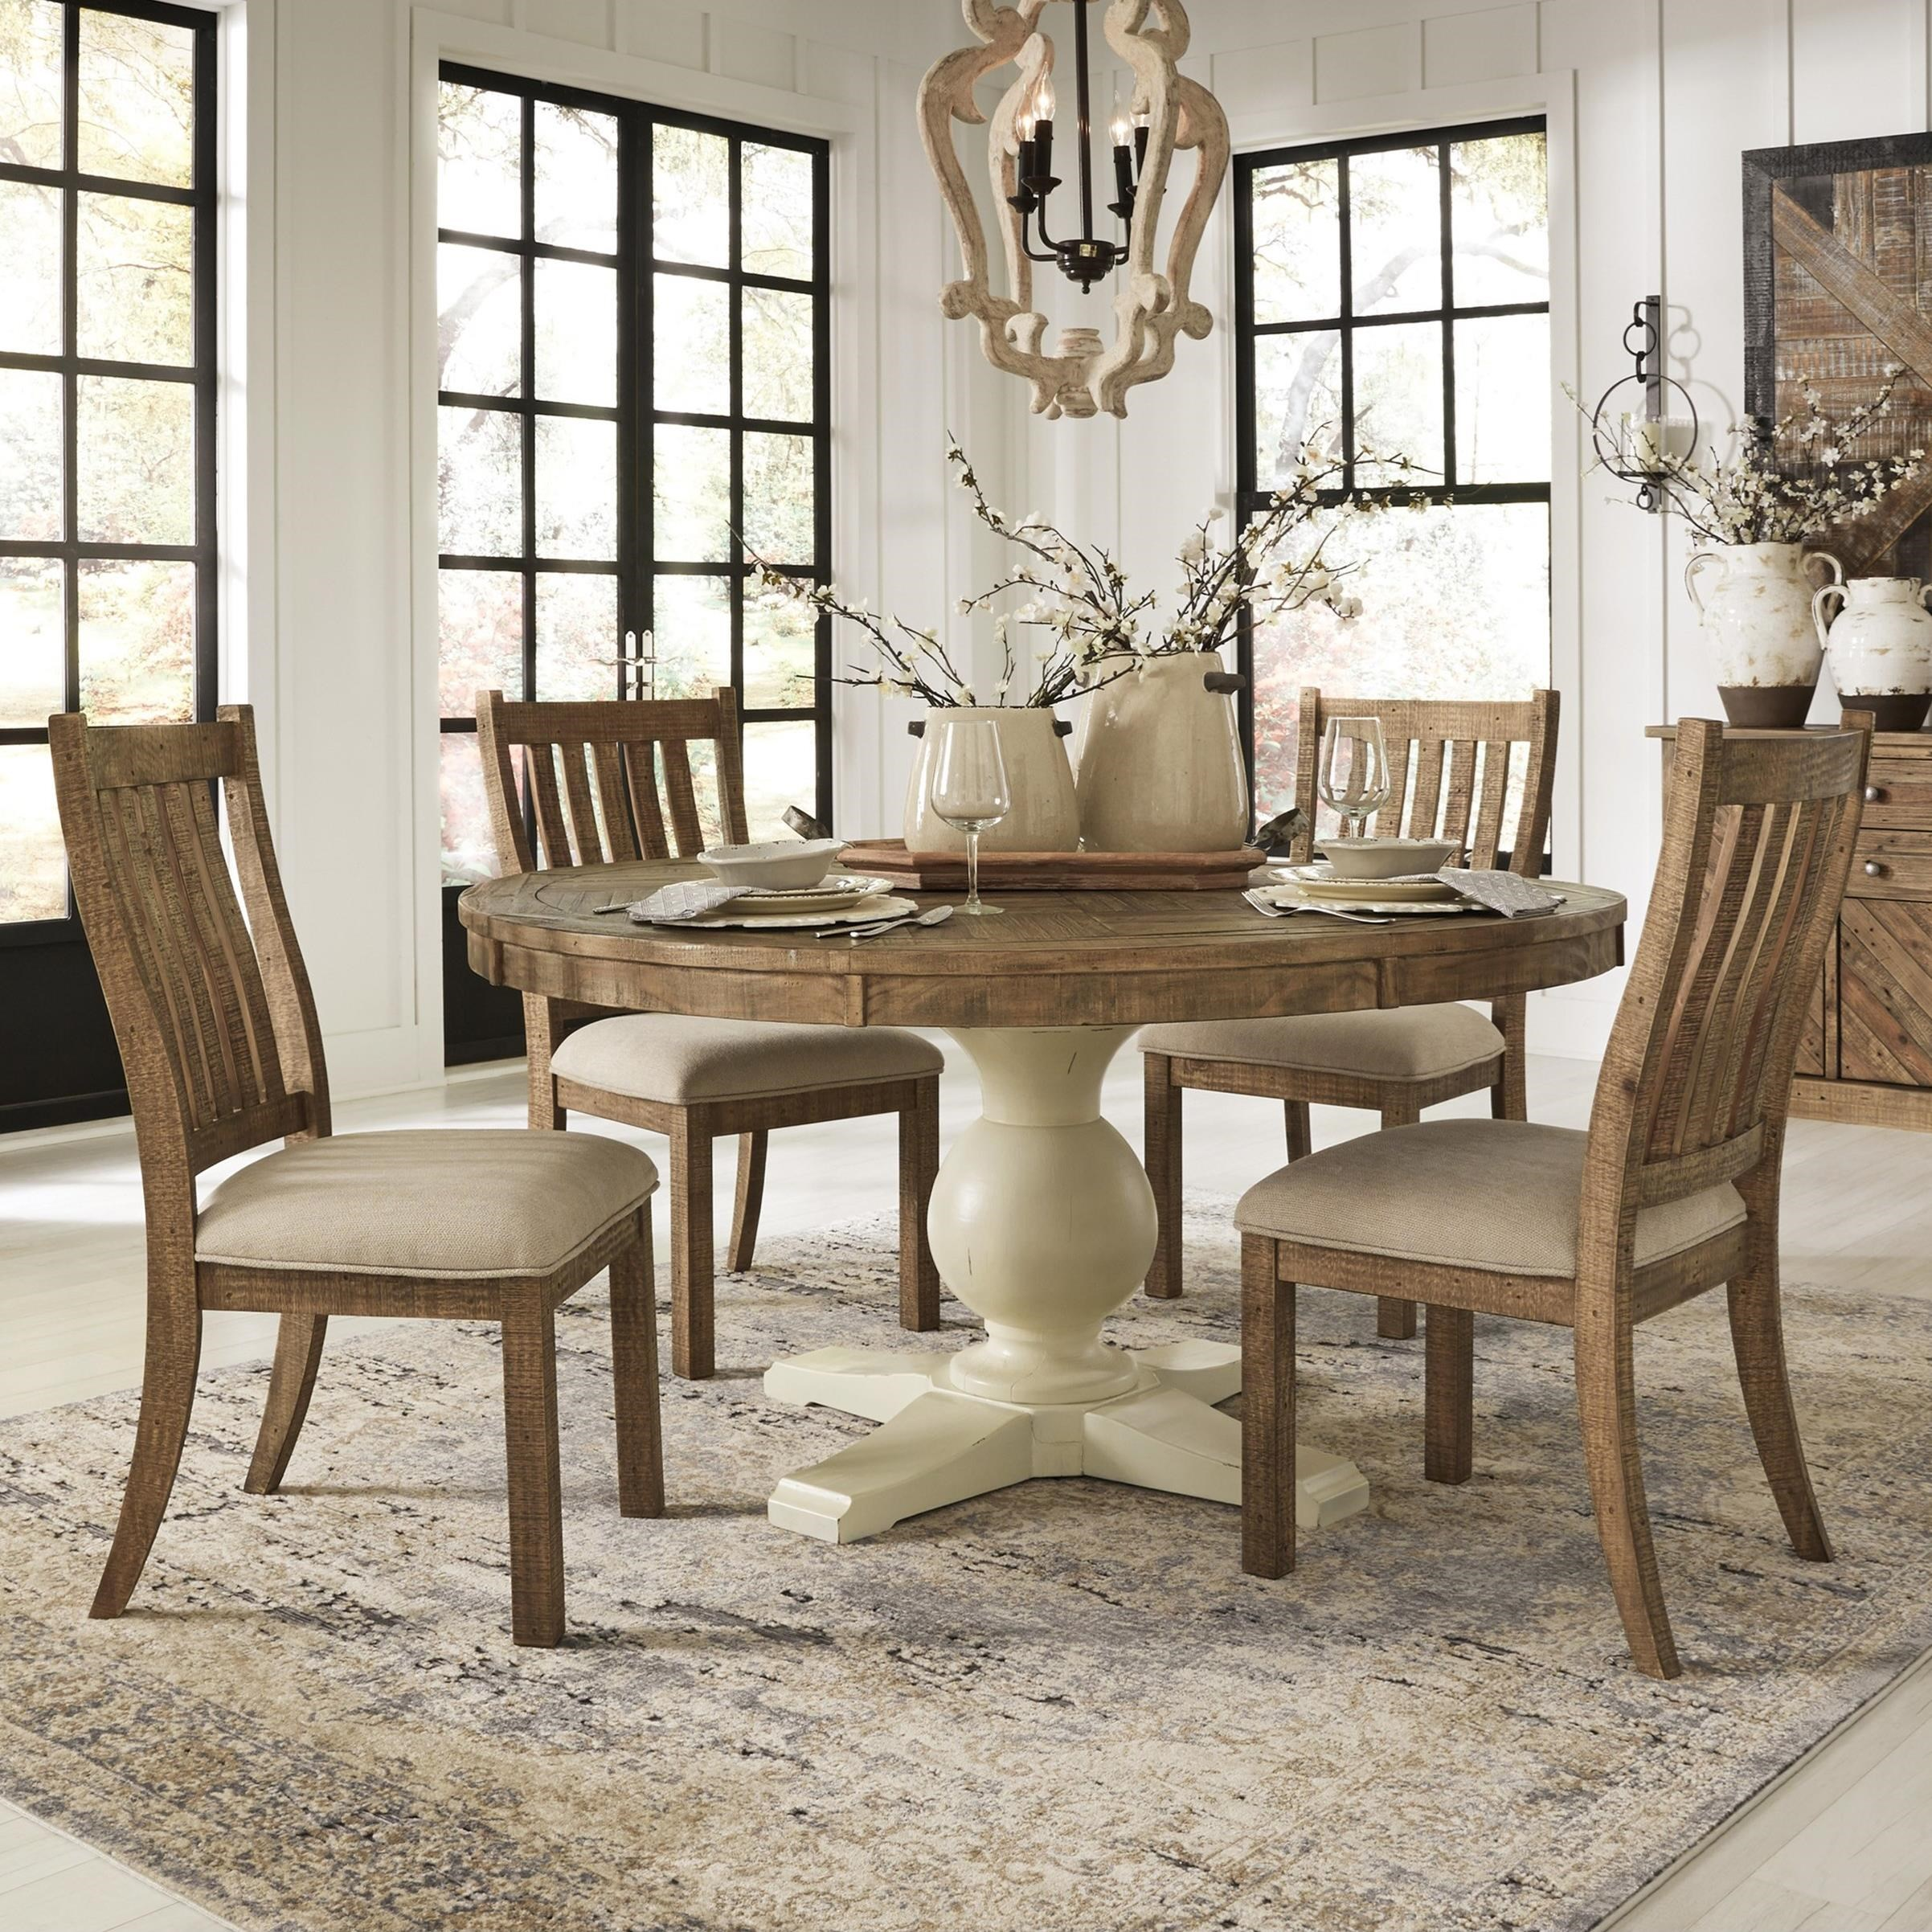 Signature Design By Ashley Grindleburg 5 Piece Round Table